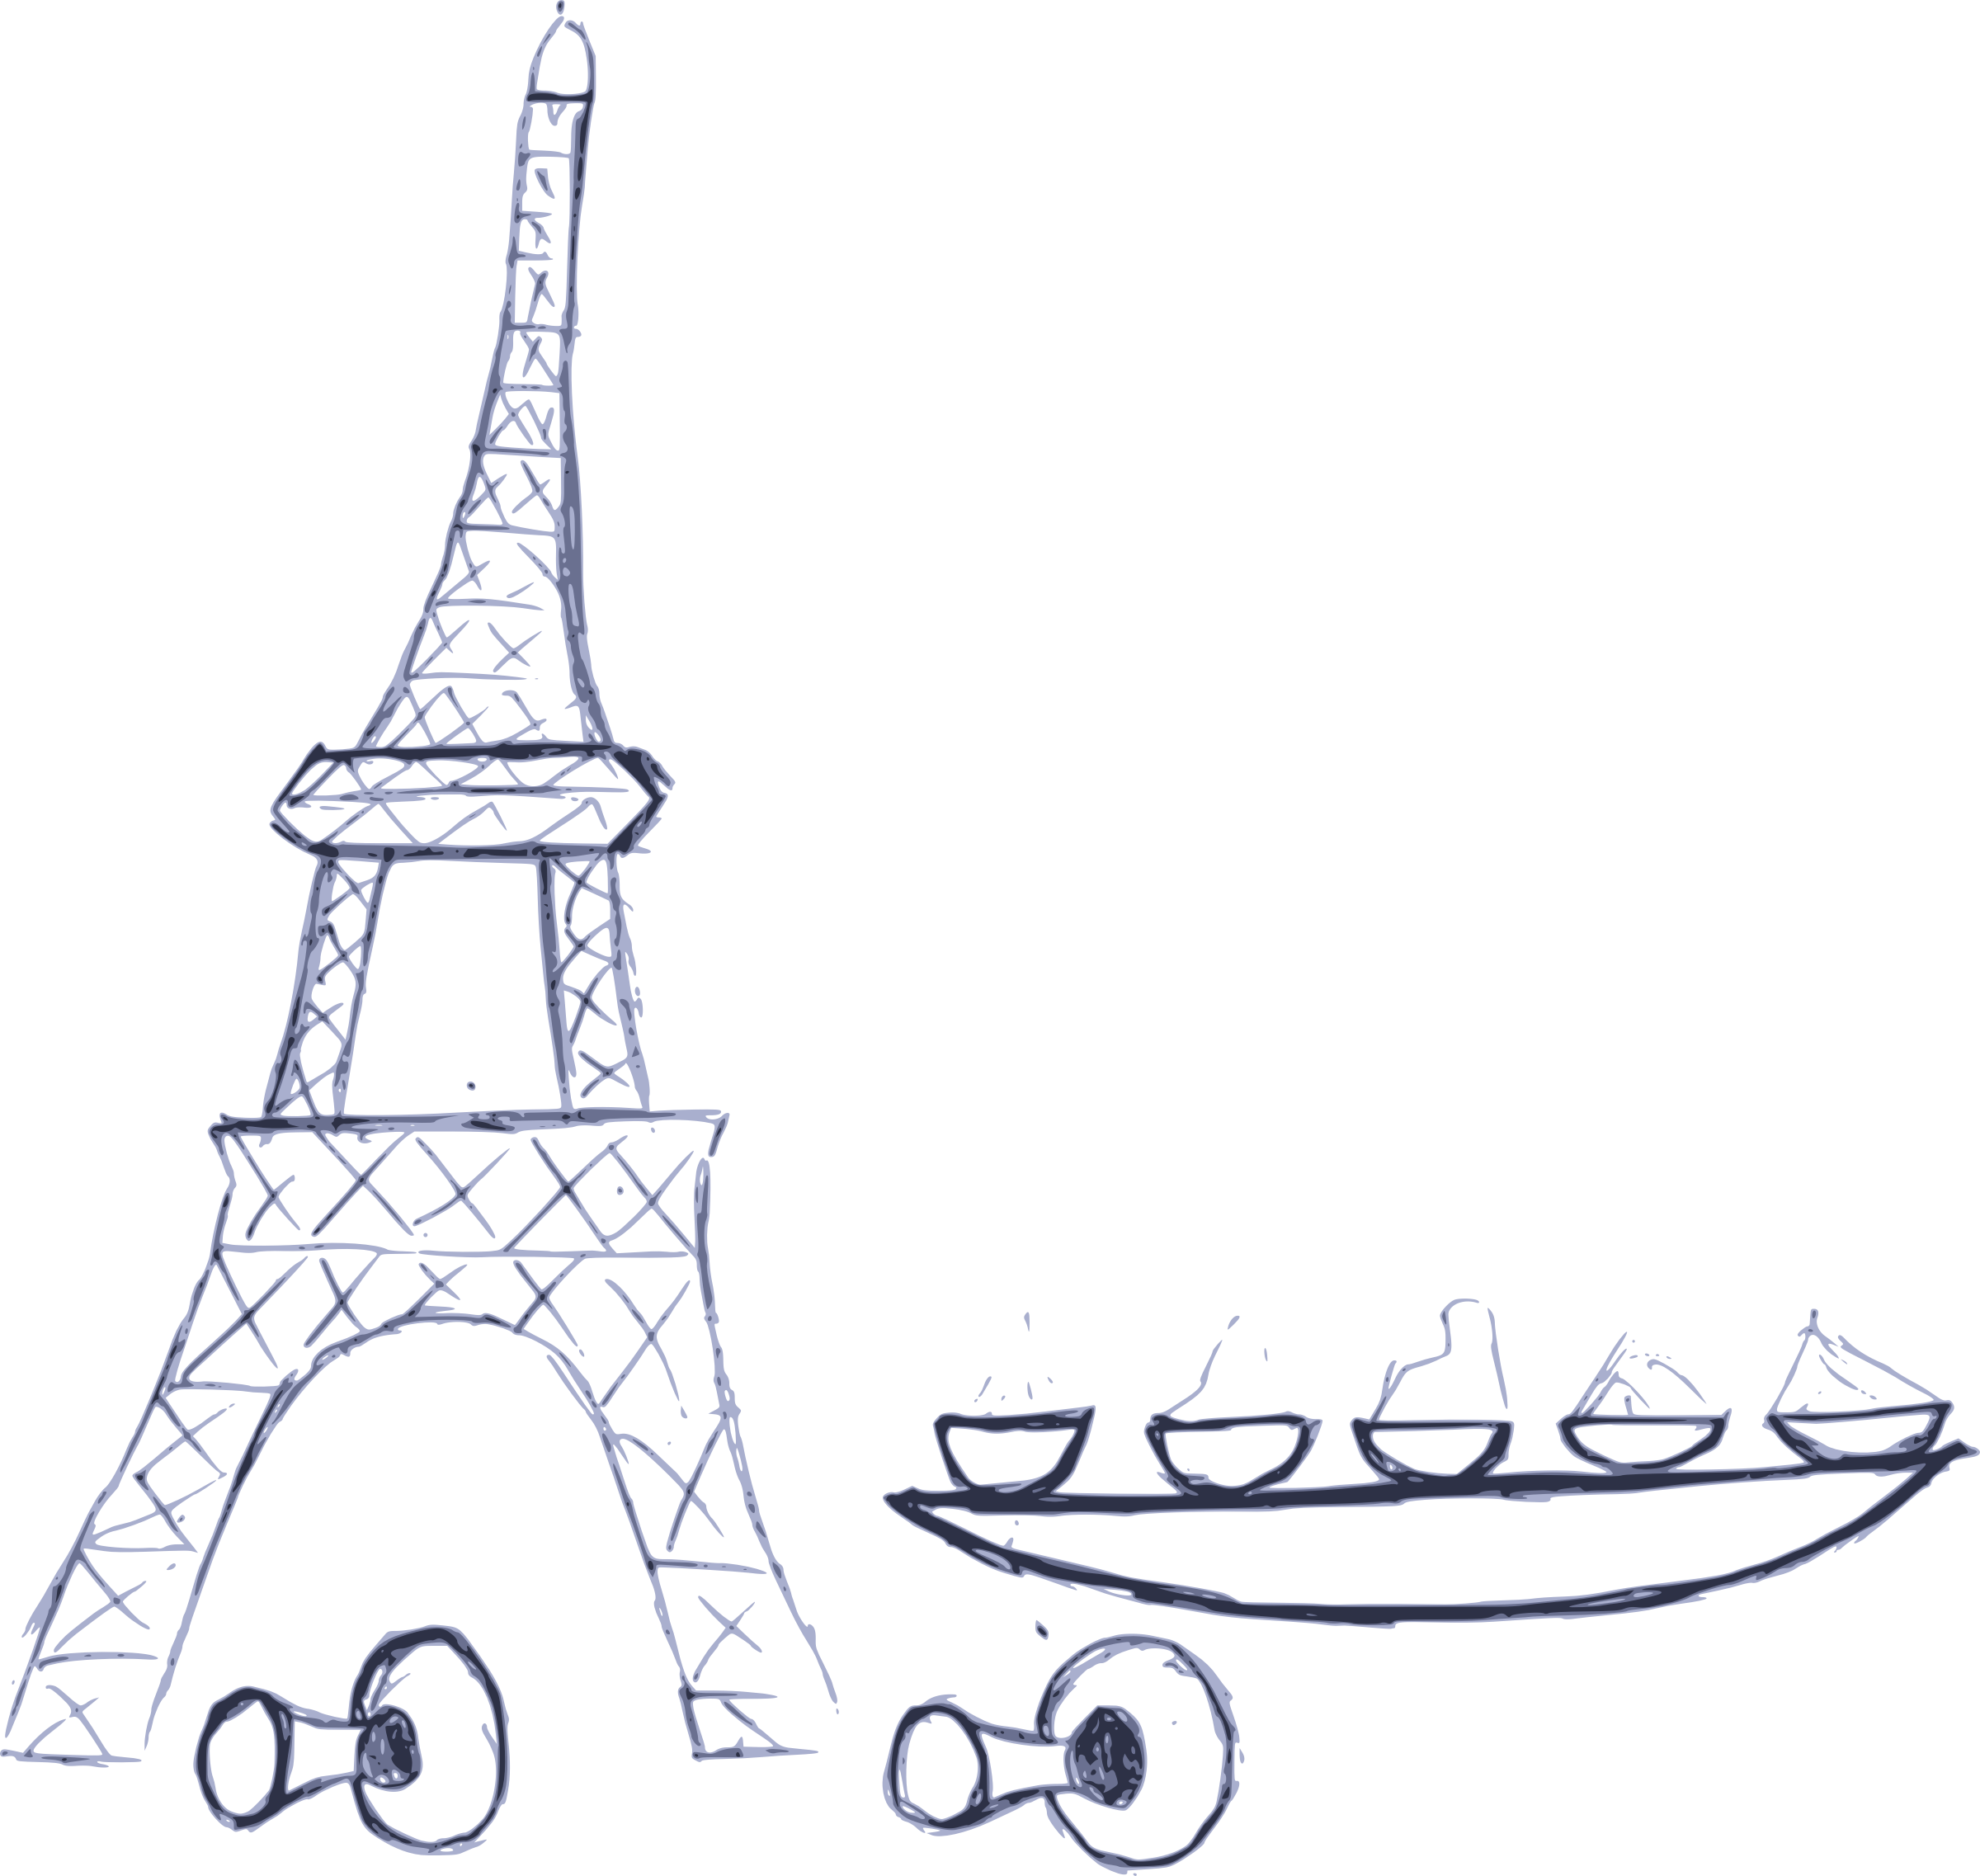 clipart champignons de paris. Black Bedroom Furniture Sets. Home Design Ideas